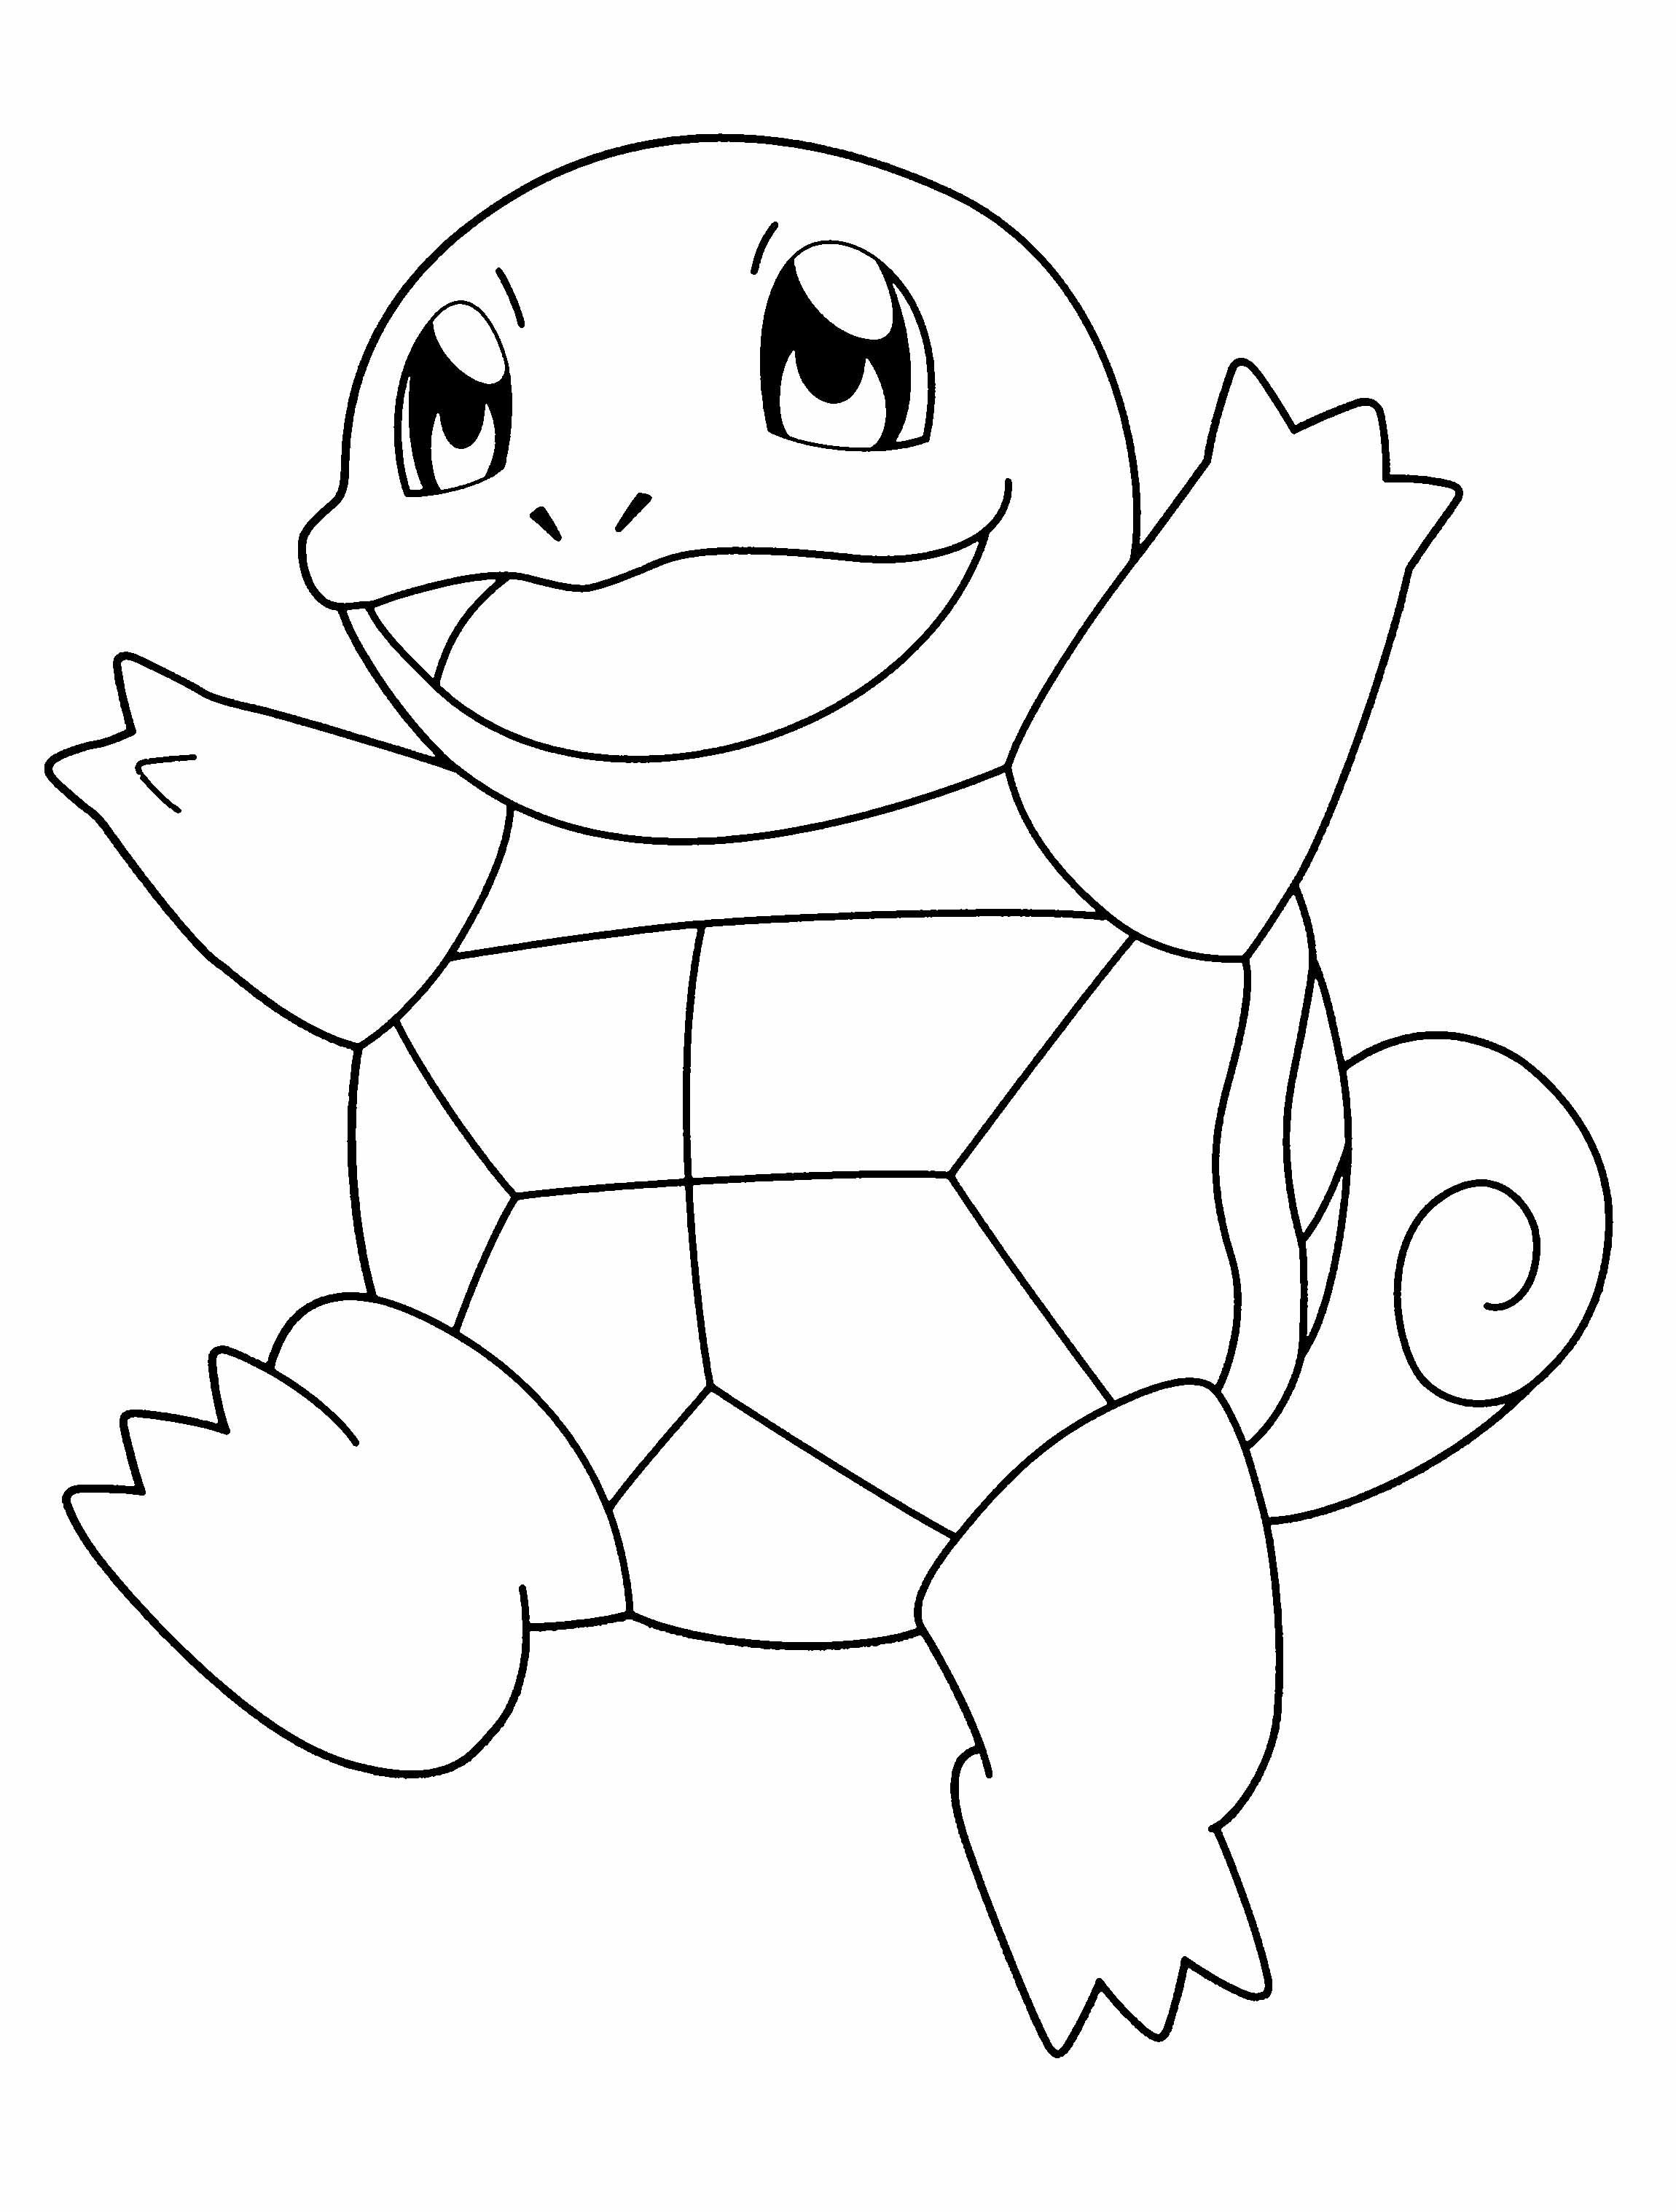 Pokemon Turtle Is Being Stepped Up Coloring Page Pokemon Coloring Owl Coloring Pages Pokemon Coloring Pages [ 3035 x 2300 Pixel ]